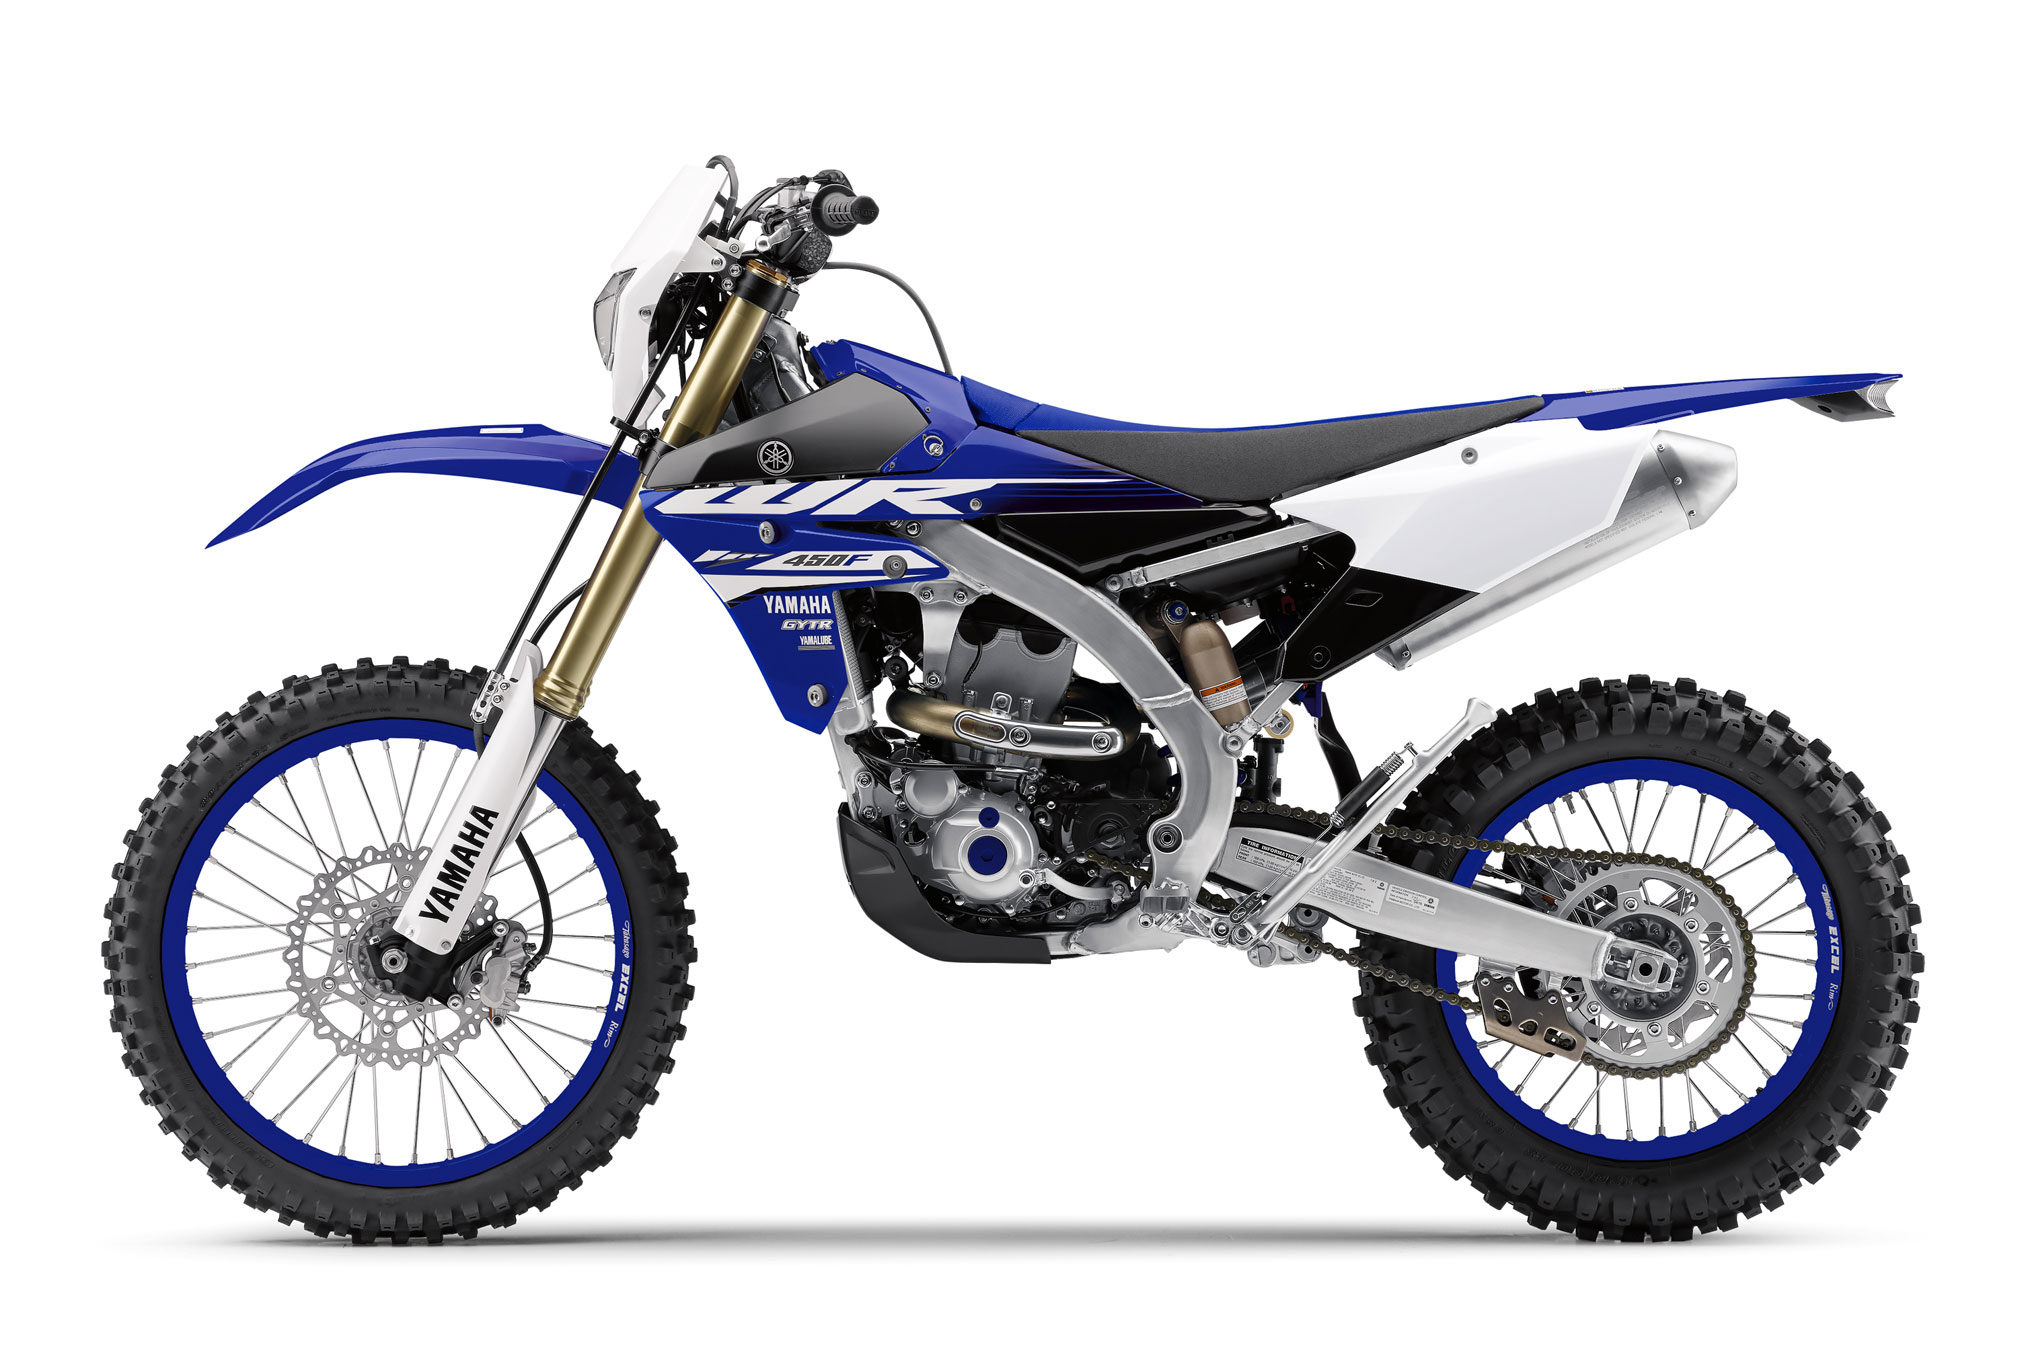 2018 yamaha wr450f review totalmotorcycle for Yamaha new motorcycles 2018